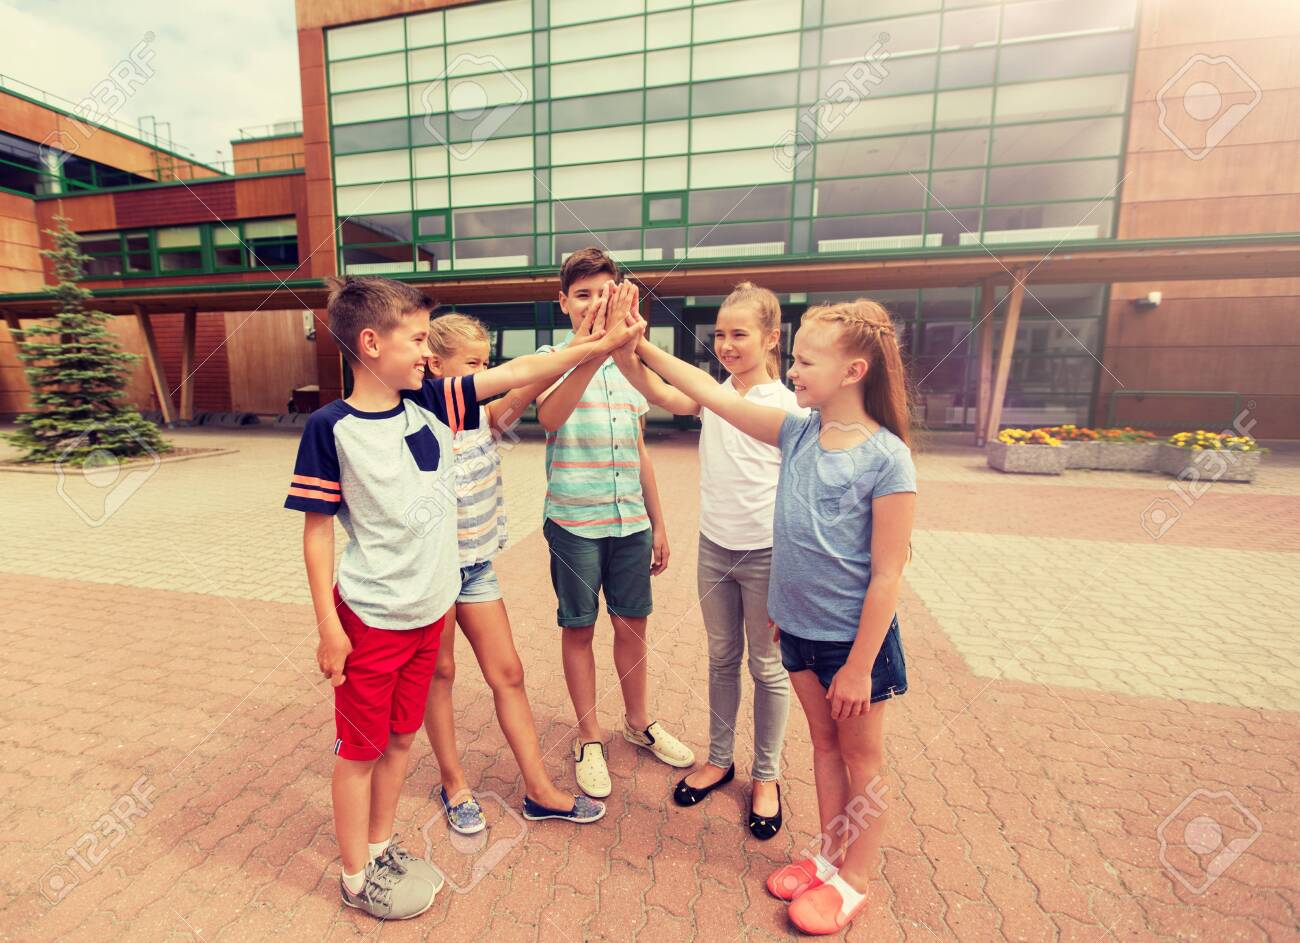 group of children making high five at school yard - 139480270